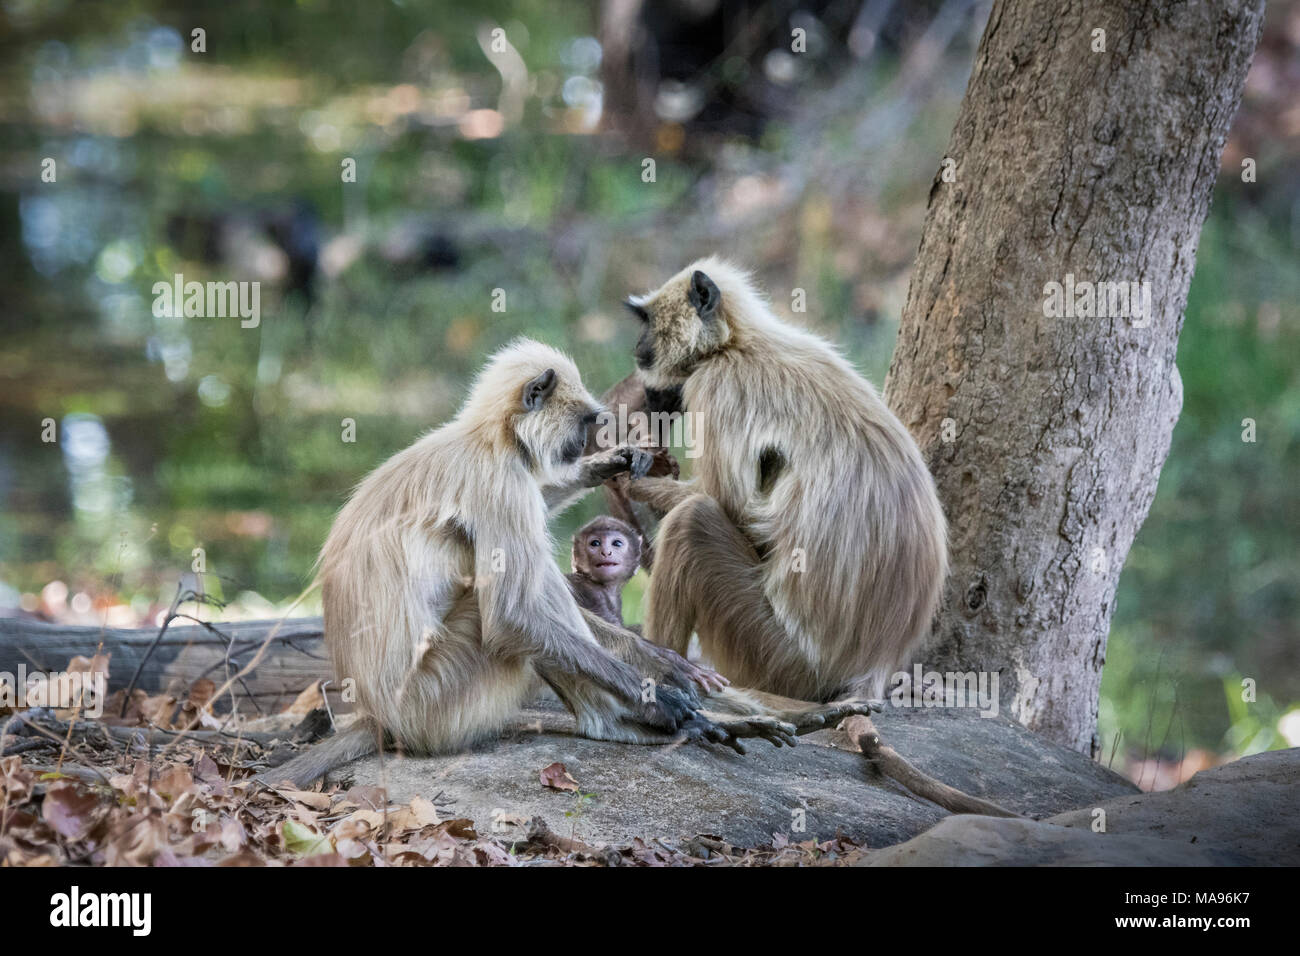 Family of wild Gray Langurs or Hanuman Langurs, Semnopithecus, with little baby looking up with love, Bandhavgarh National Park, Madhya Pradesh, India - Stock Image